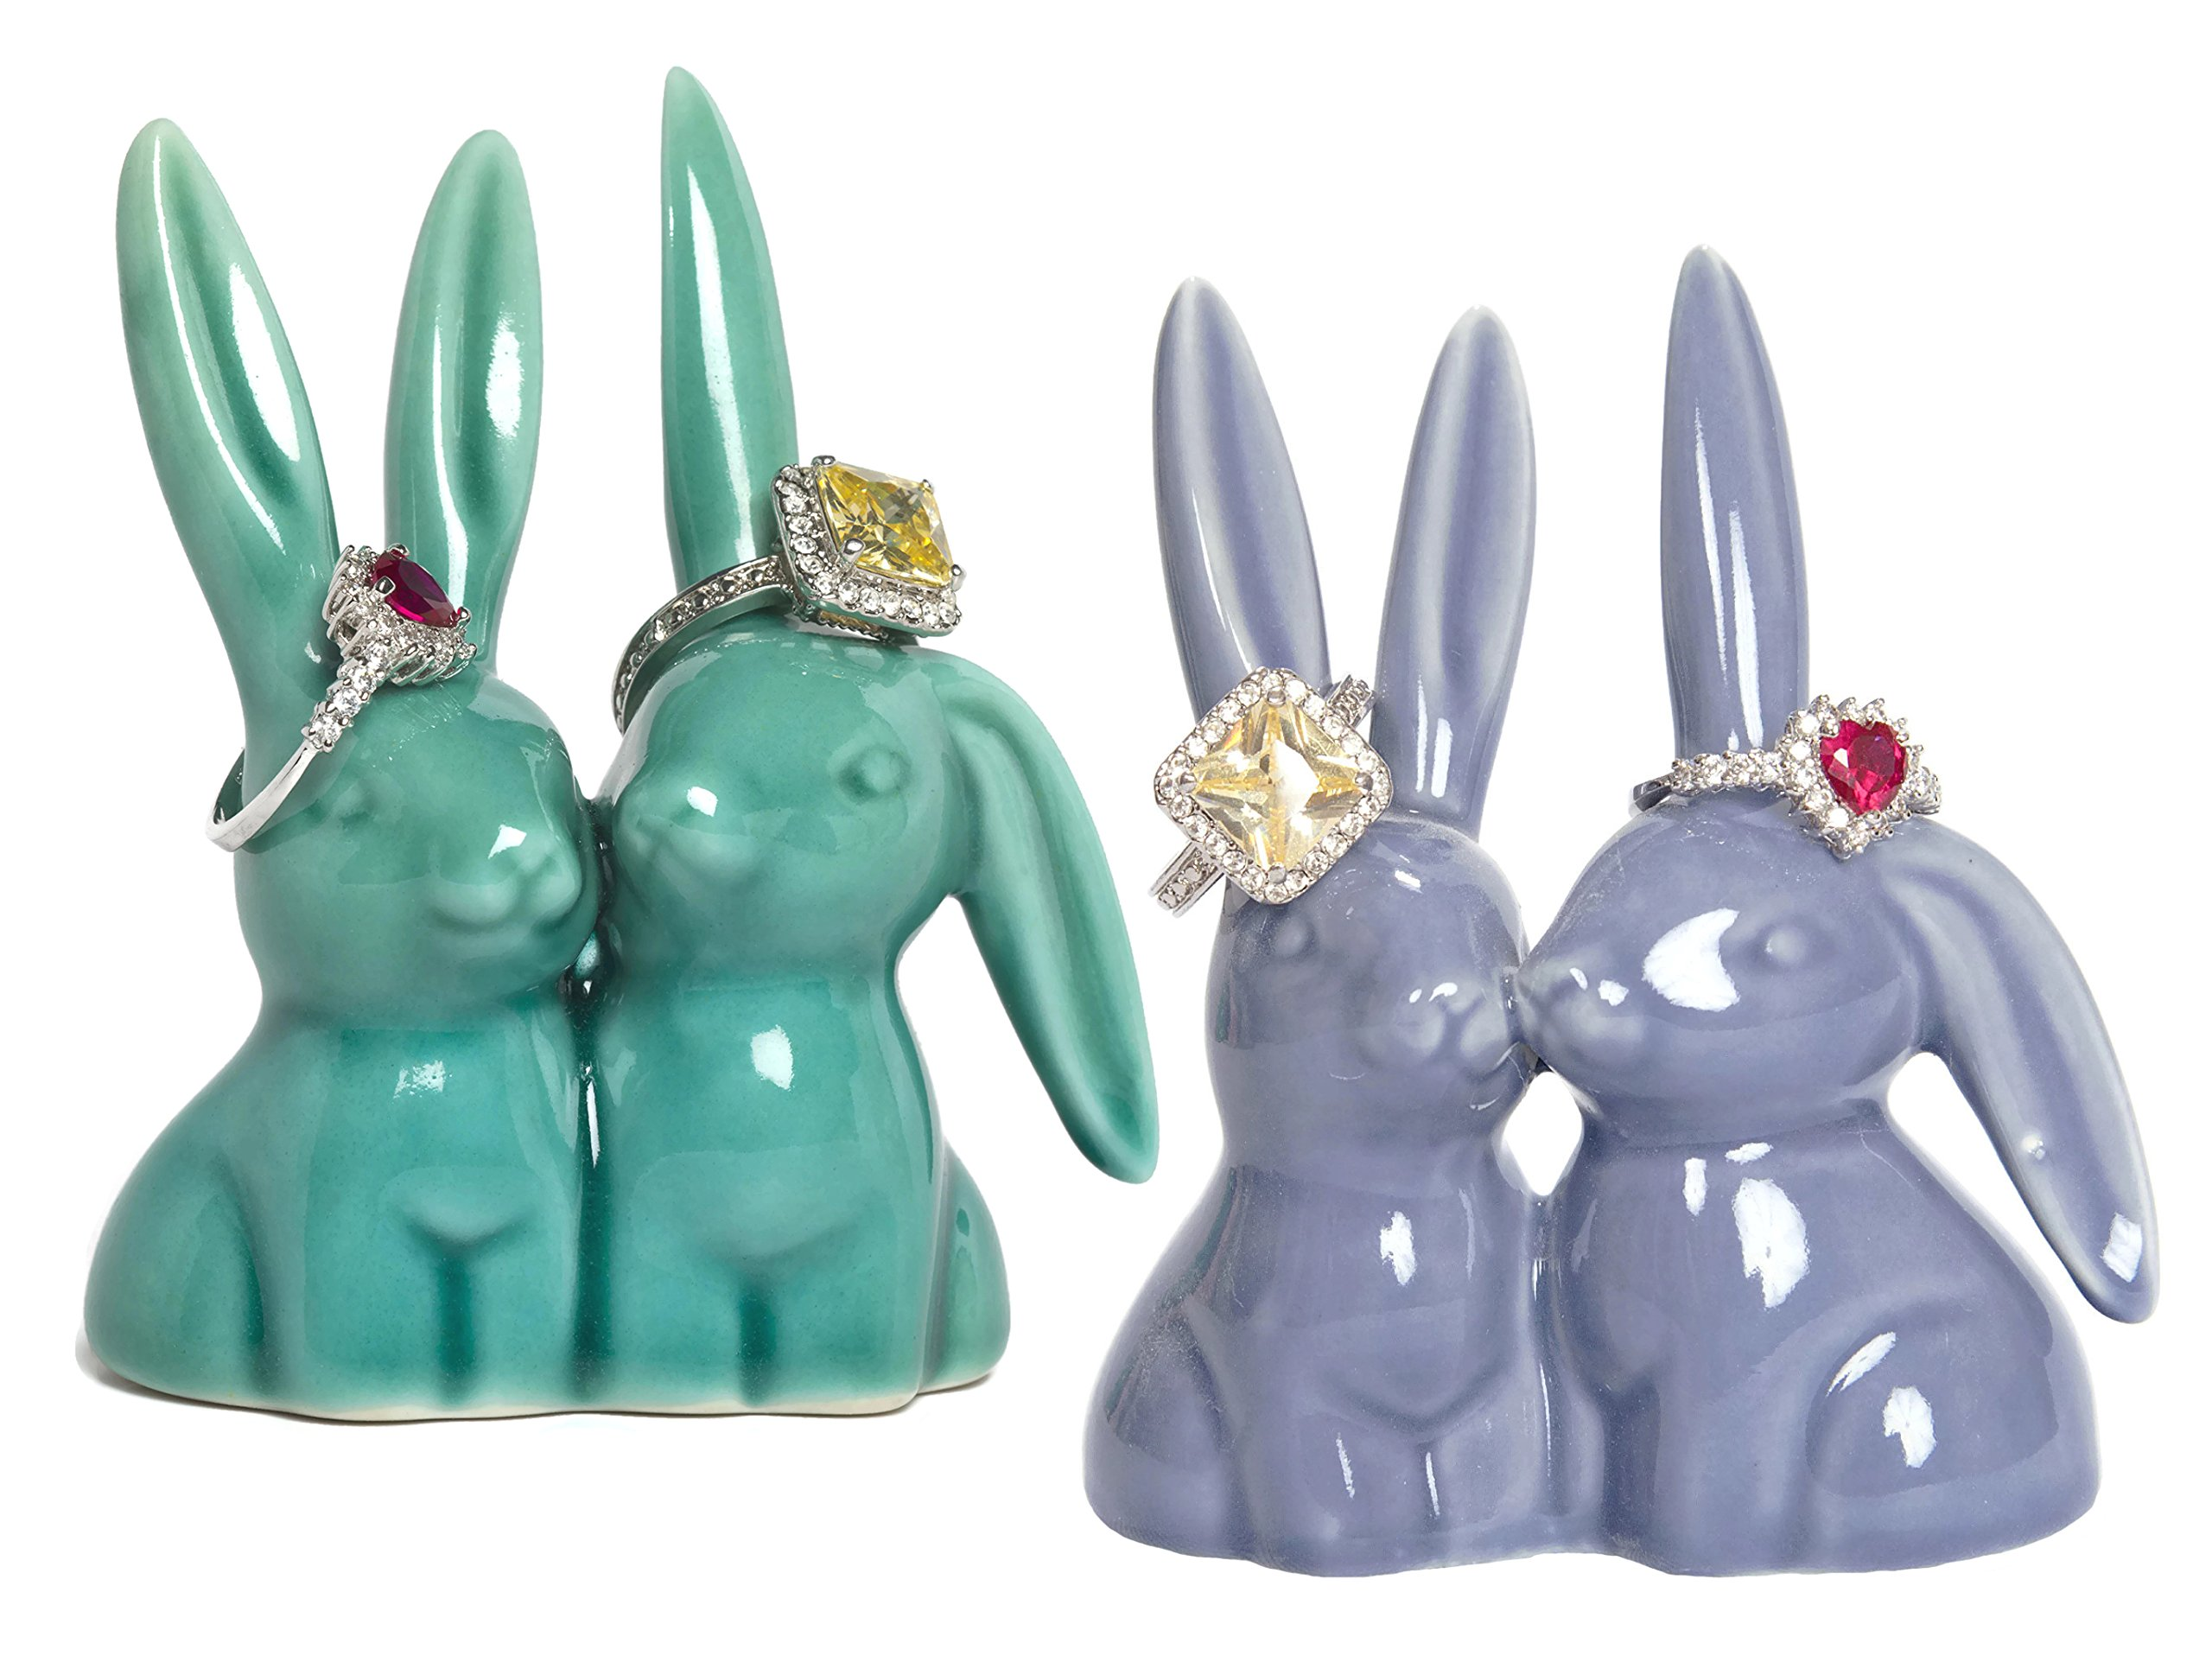 Beth Marie Luxury Boutique Bunny Rabbit Ring Holder (2-Pack), Adorable Purple and Teal Ceramic Engagement and Wedding Ring Holder